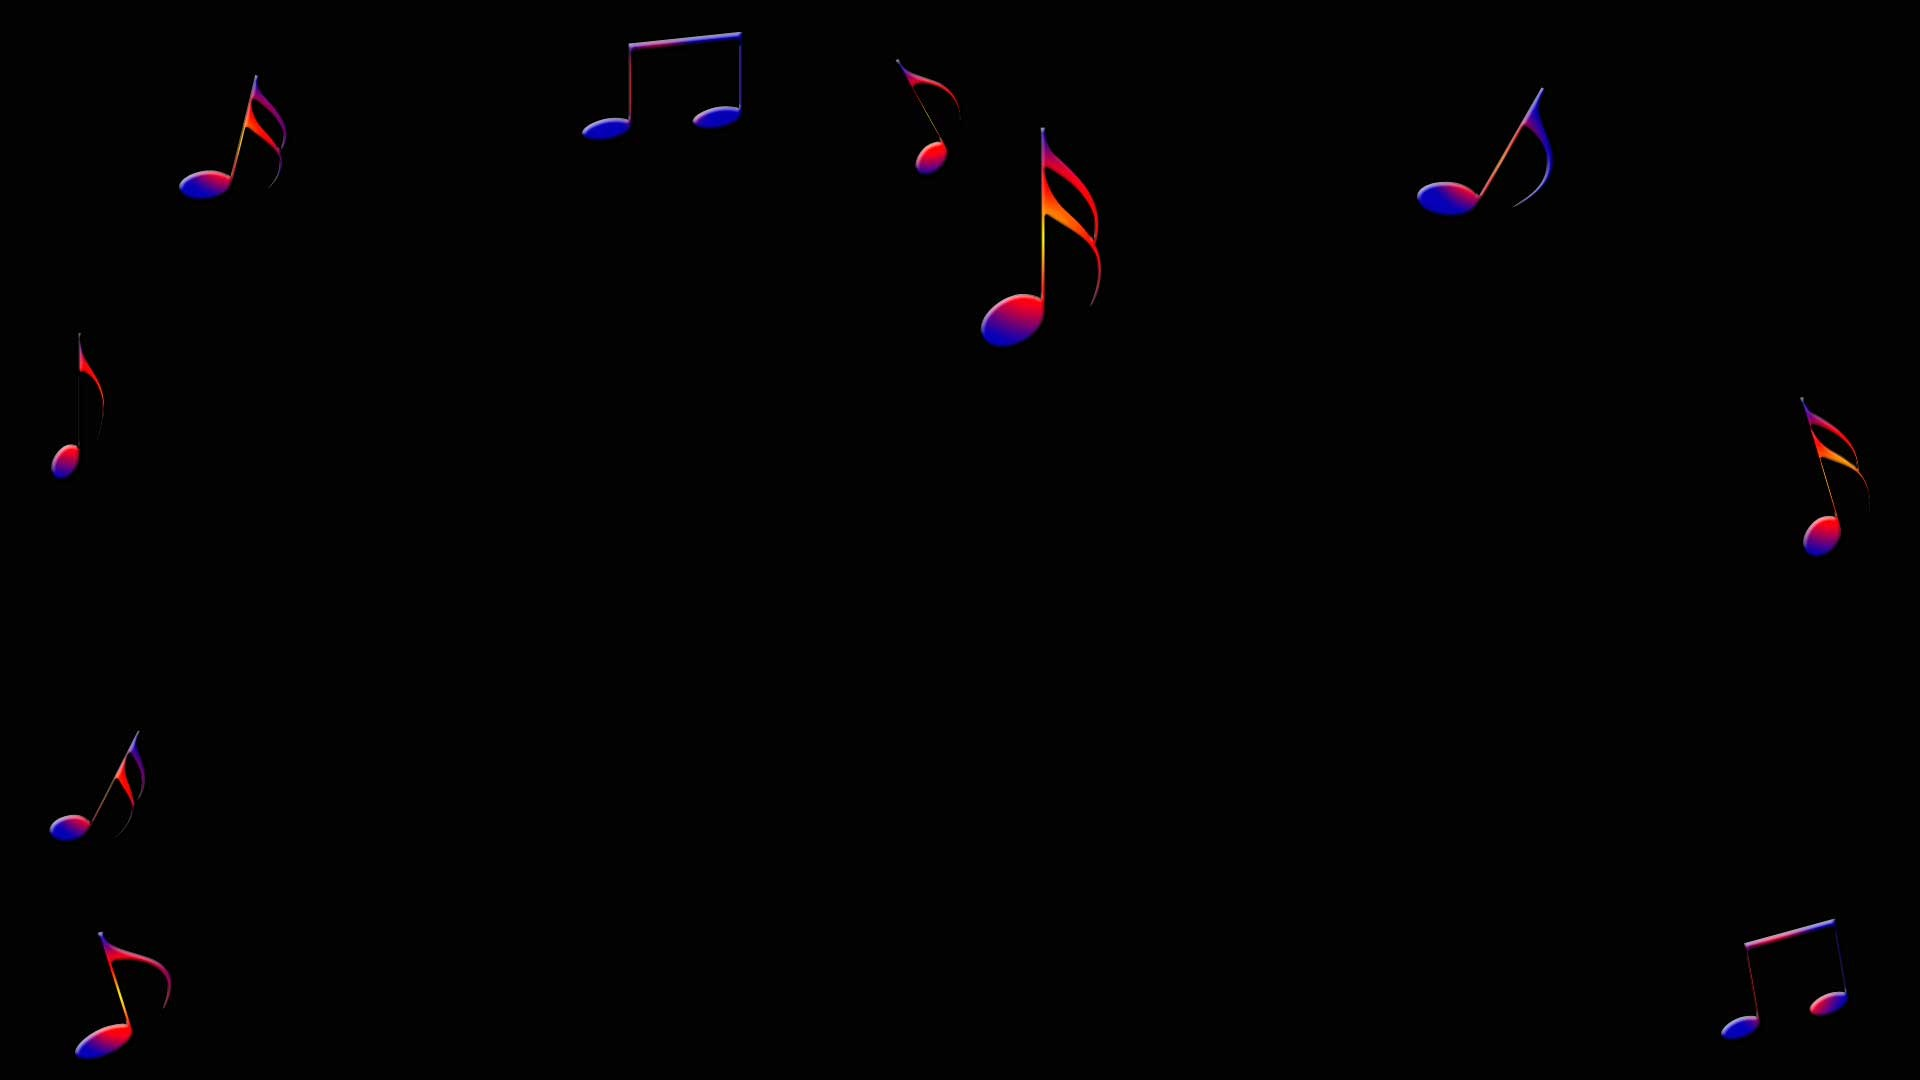 Colorful Music Notes In A Lin Hd Wallpaper Background Images: Musical Background ·① Download Free Beautiful Backgrounds